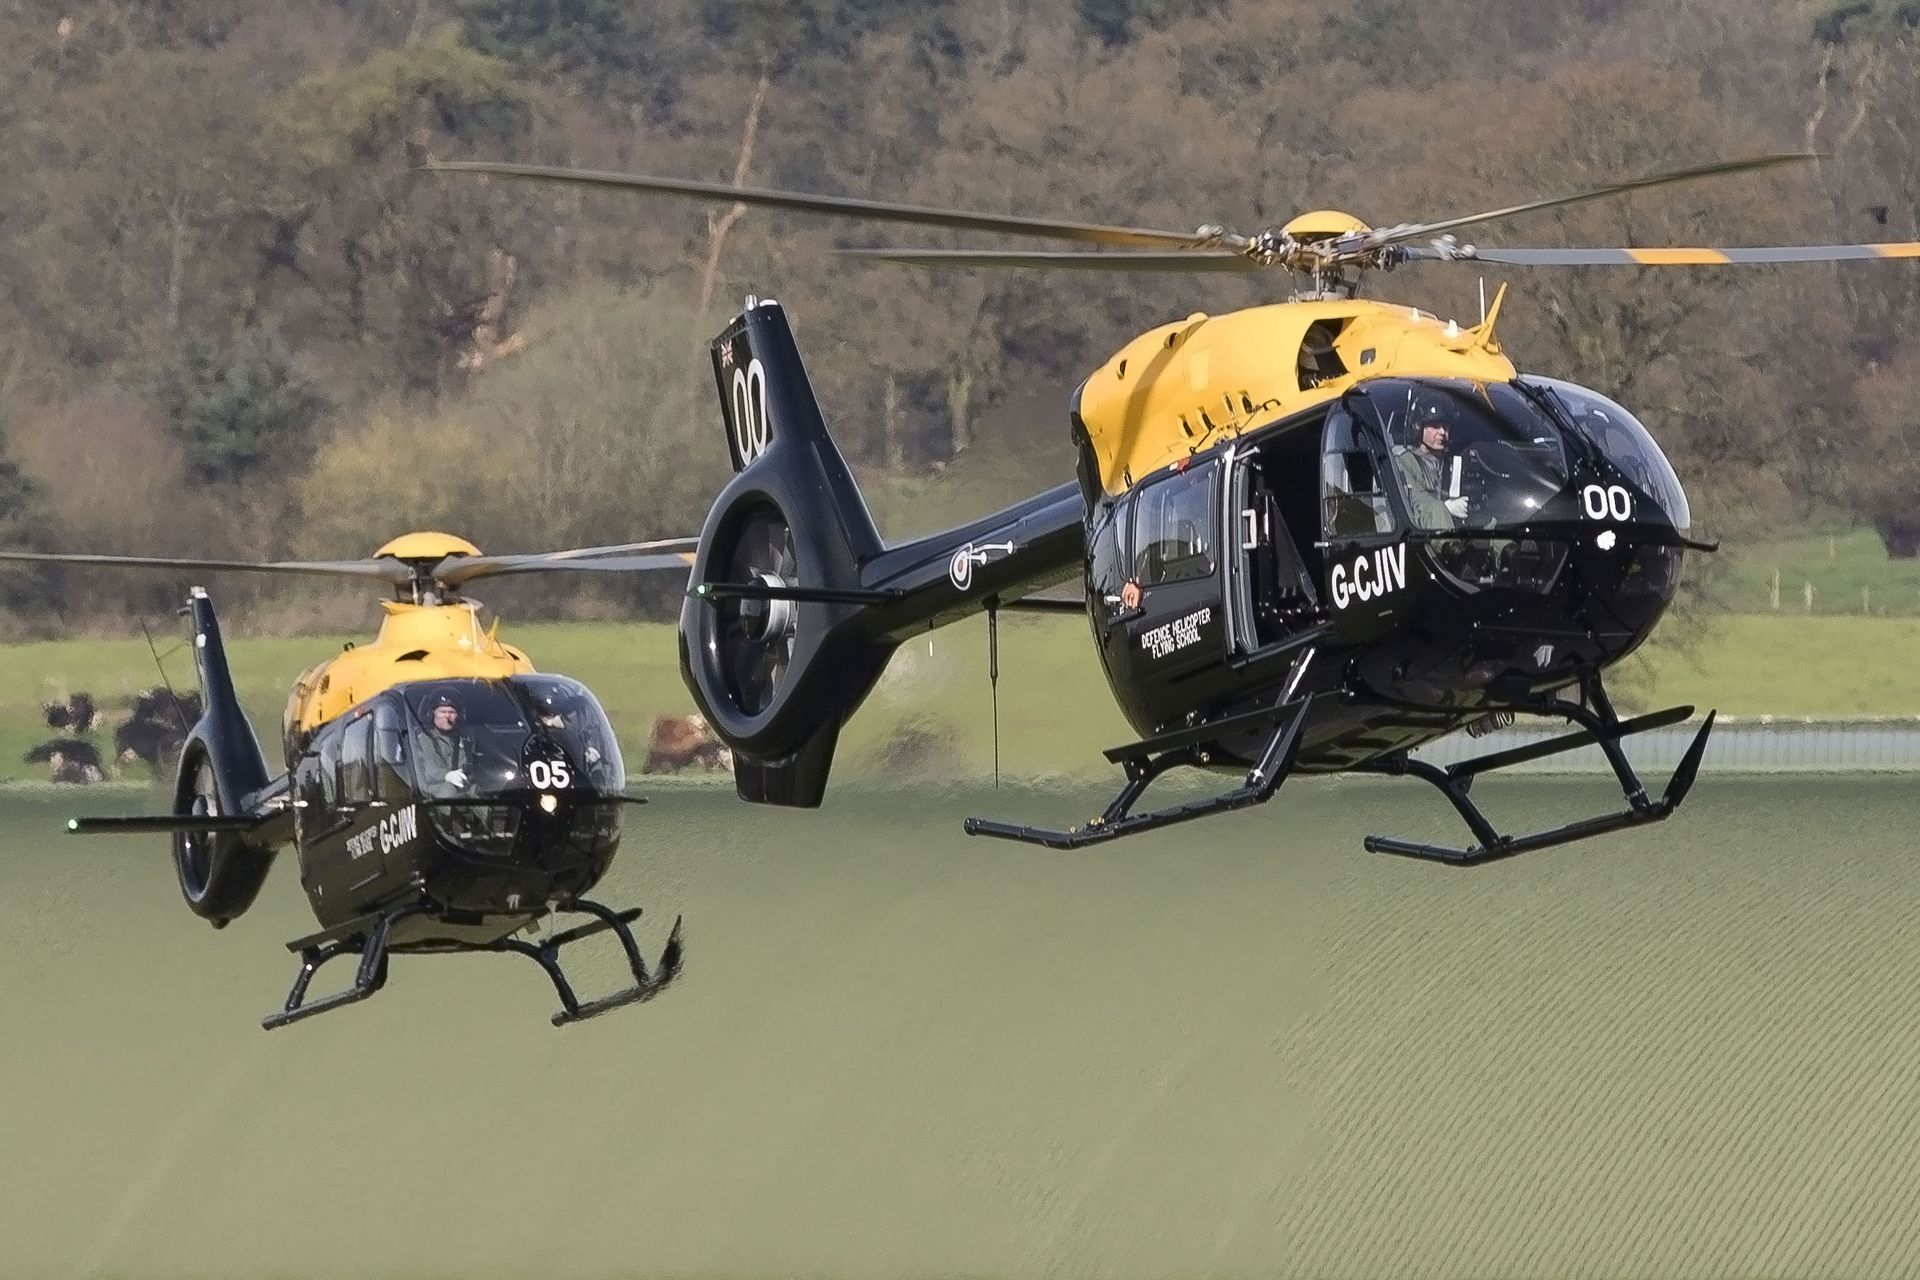 H135s for the UK MFTS